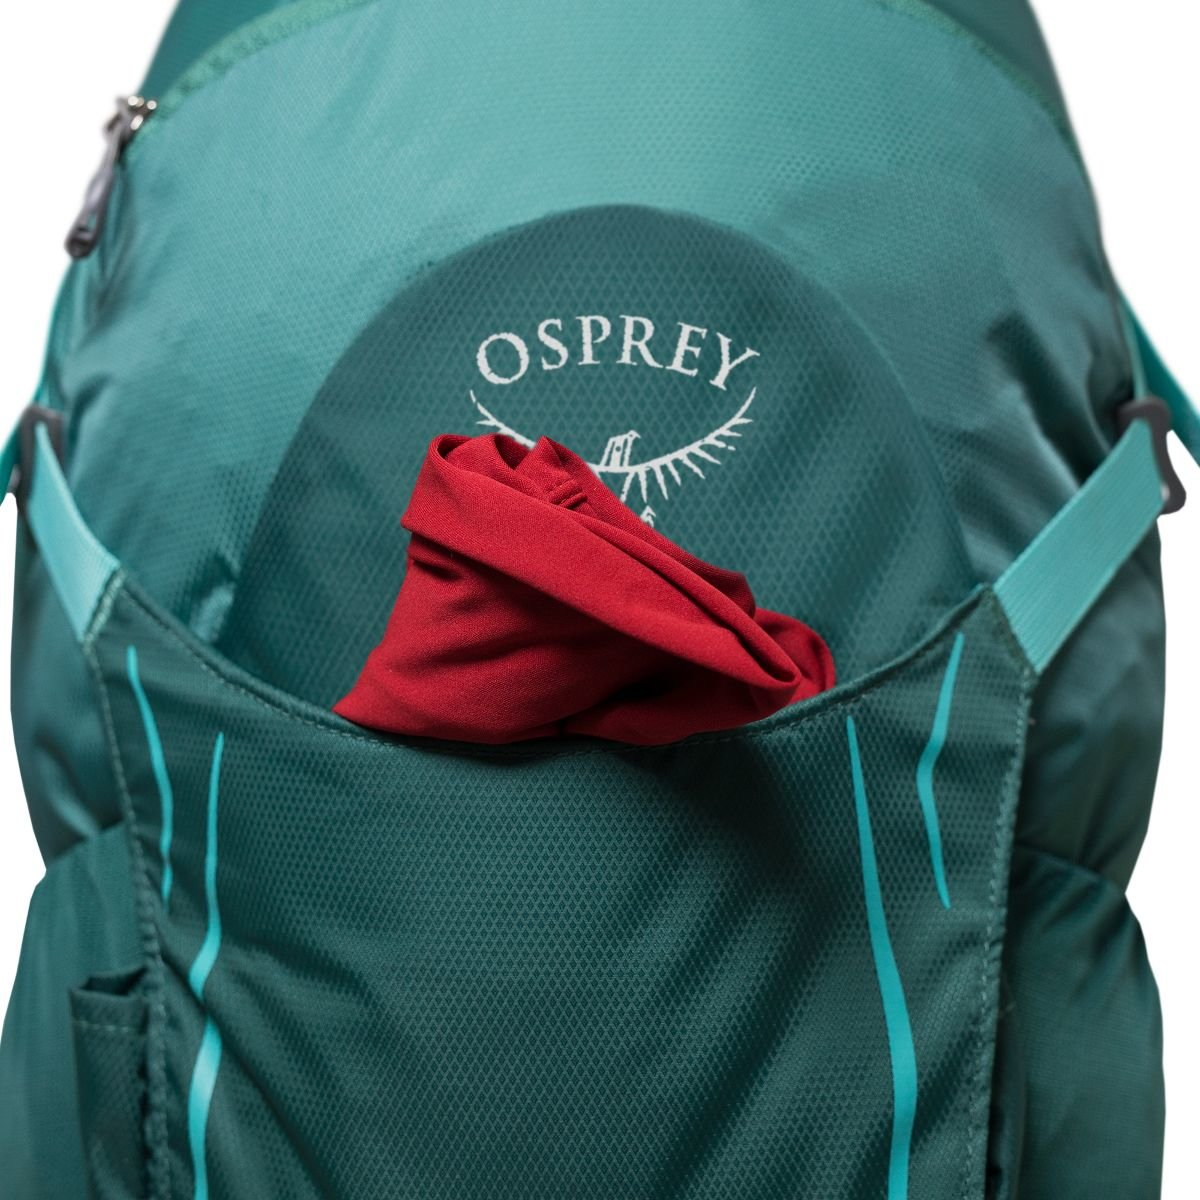 Велосипедный рюкзак Osprey HIKELITE 26 black Osprey HIKELITE 26 front pocket